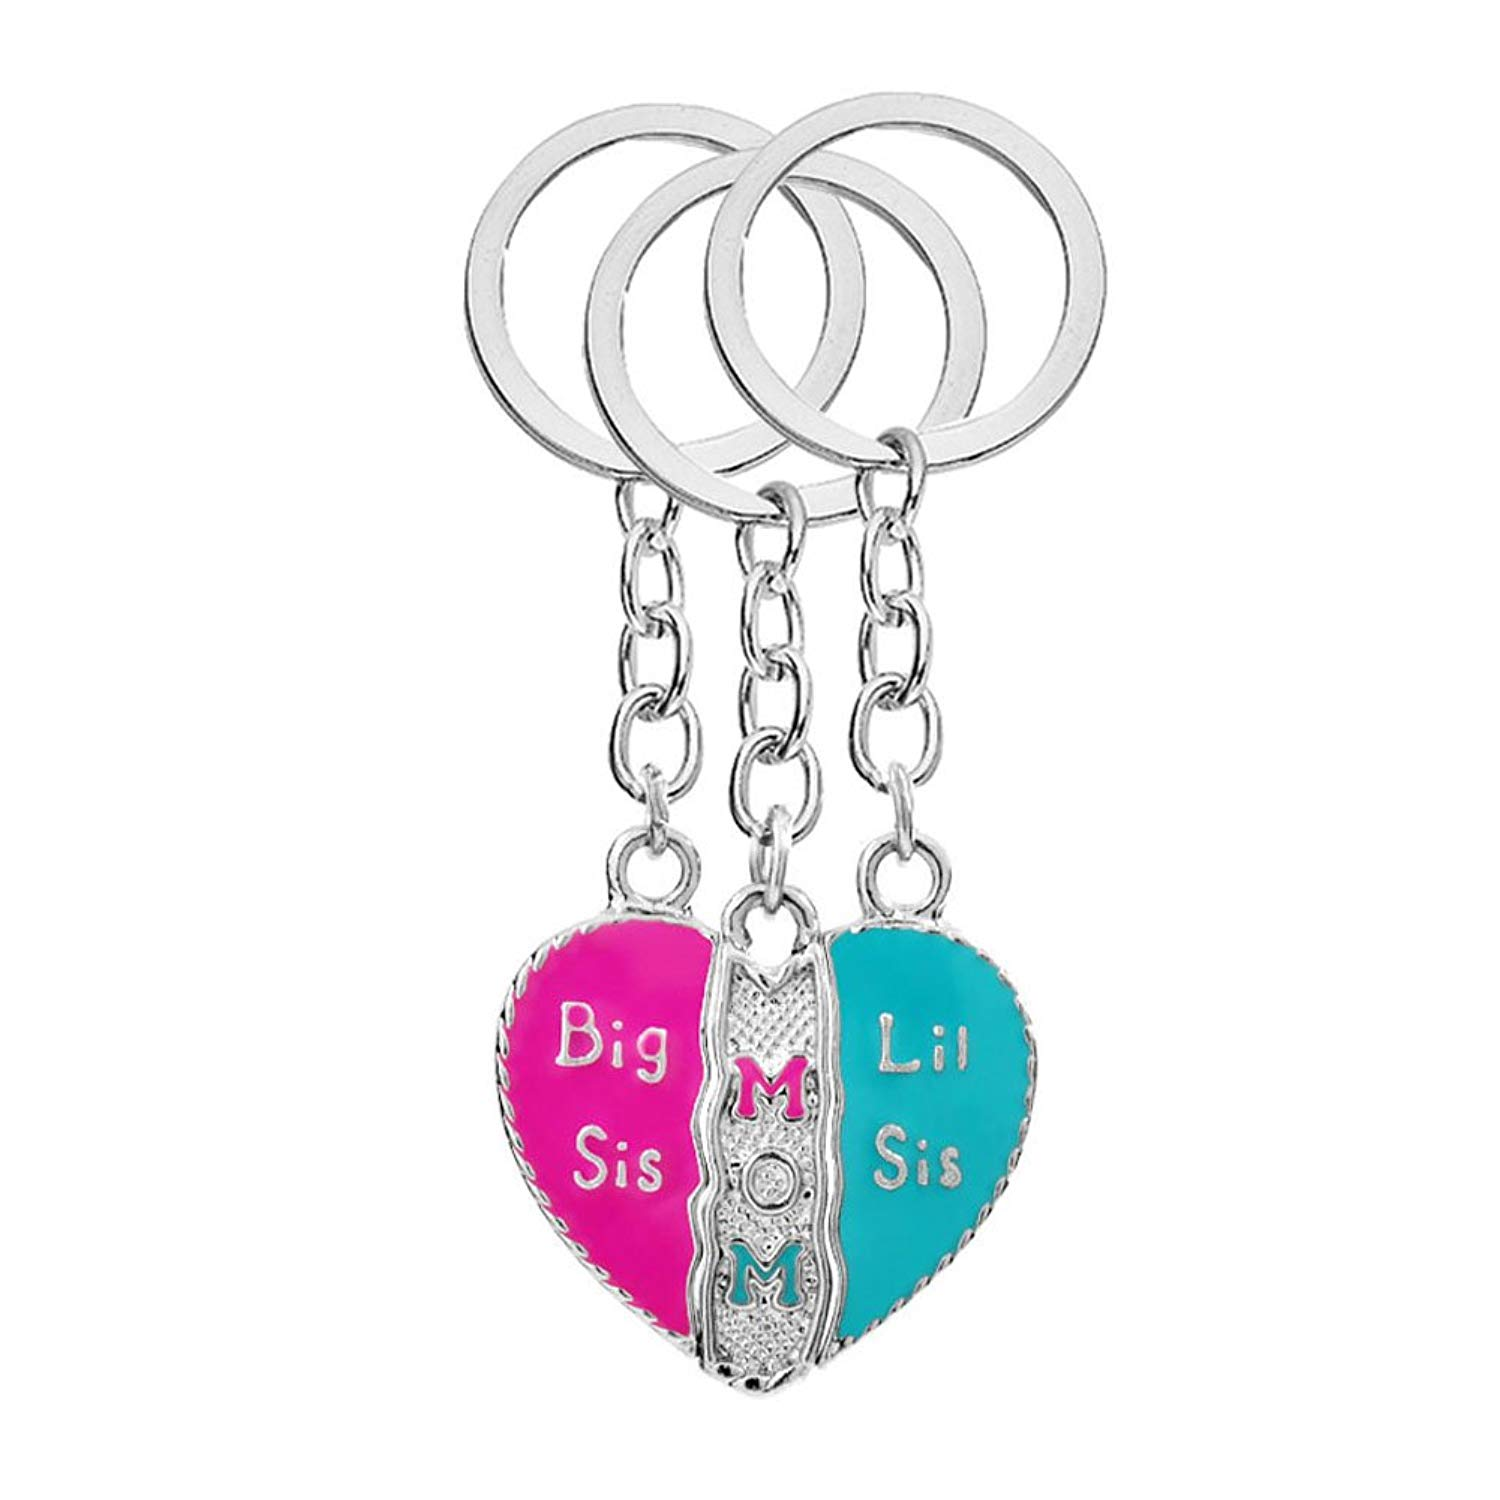 LINKY Set of 3 Big Sis Mom Little Sis Pendant Keychain Set Gifts for Mom and Daughters